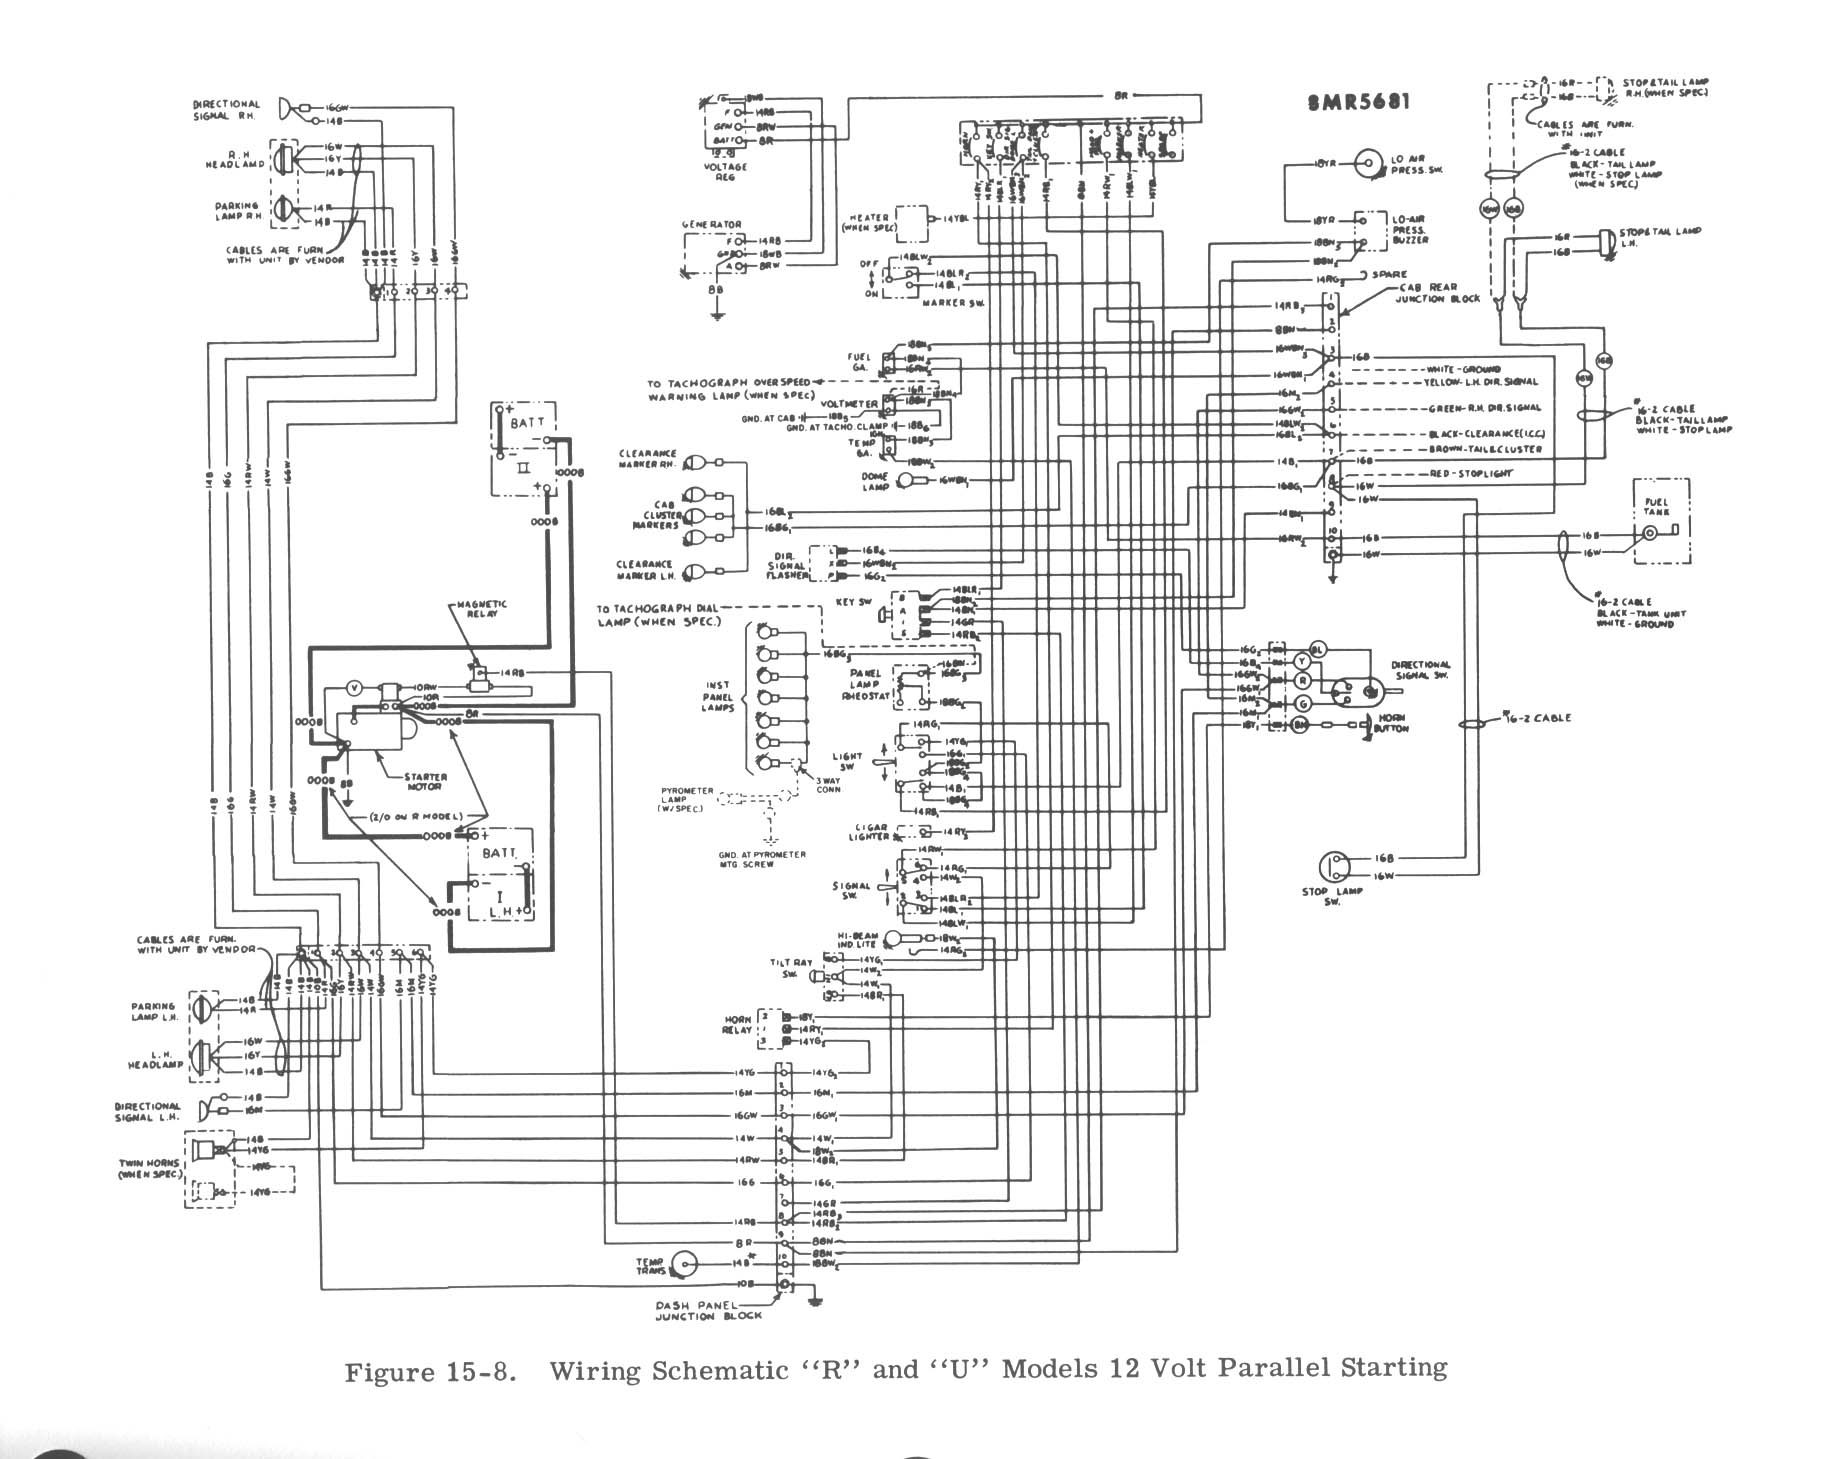 Mack Truck Wiring Diagram - Data Wiring Diagram Today - Mack Truck Wiring Diagram Free Download